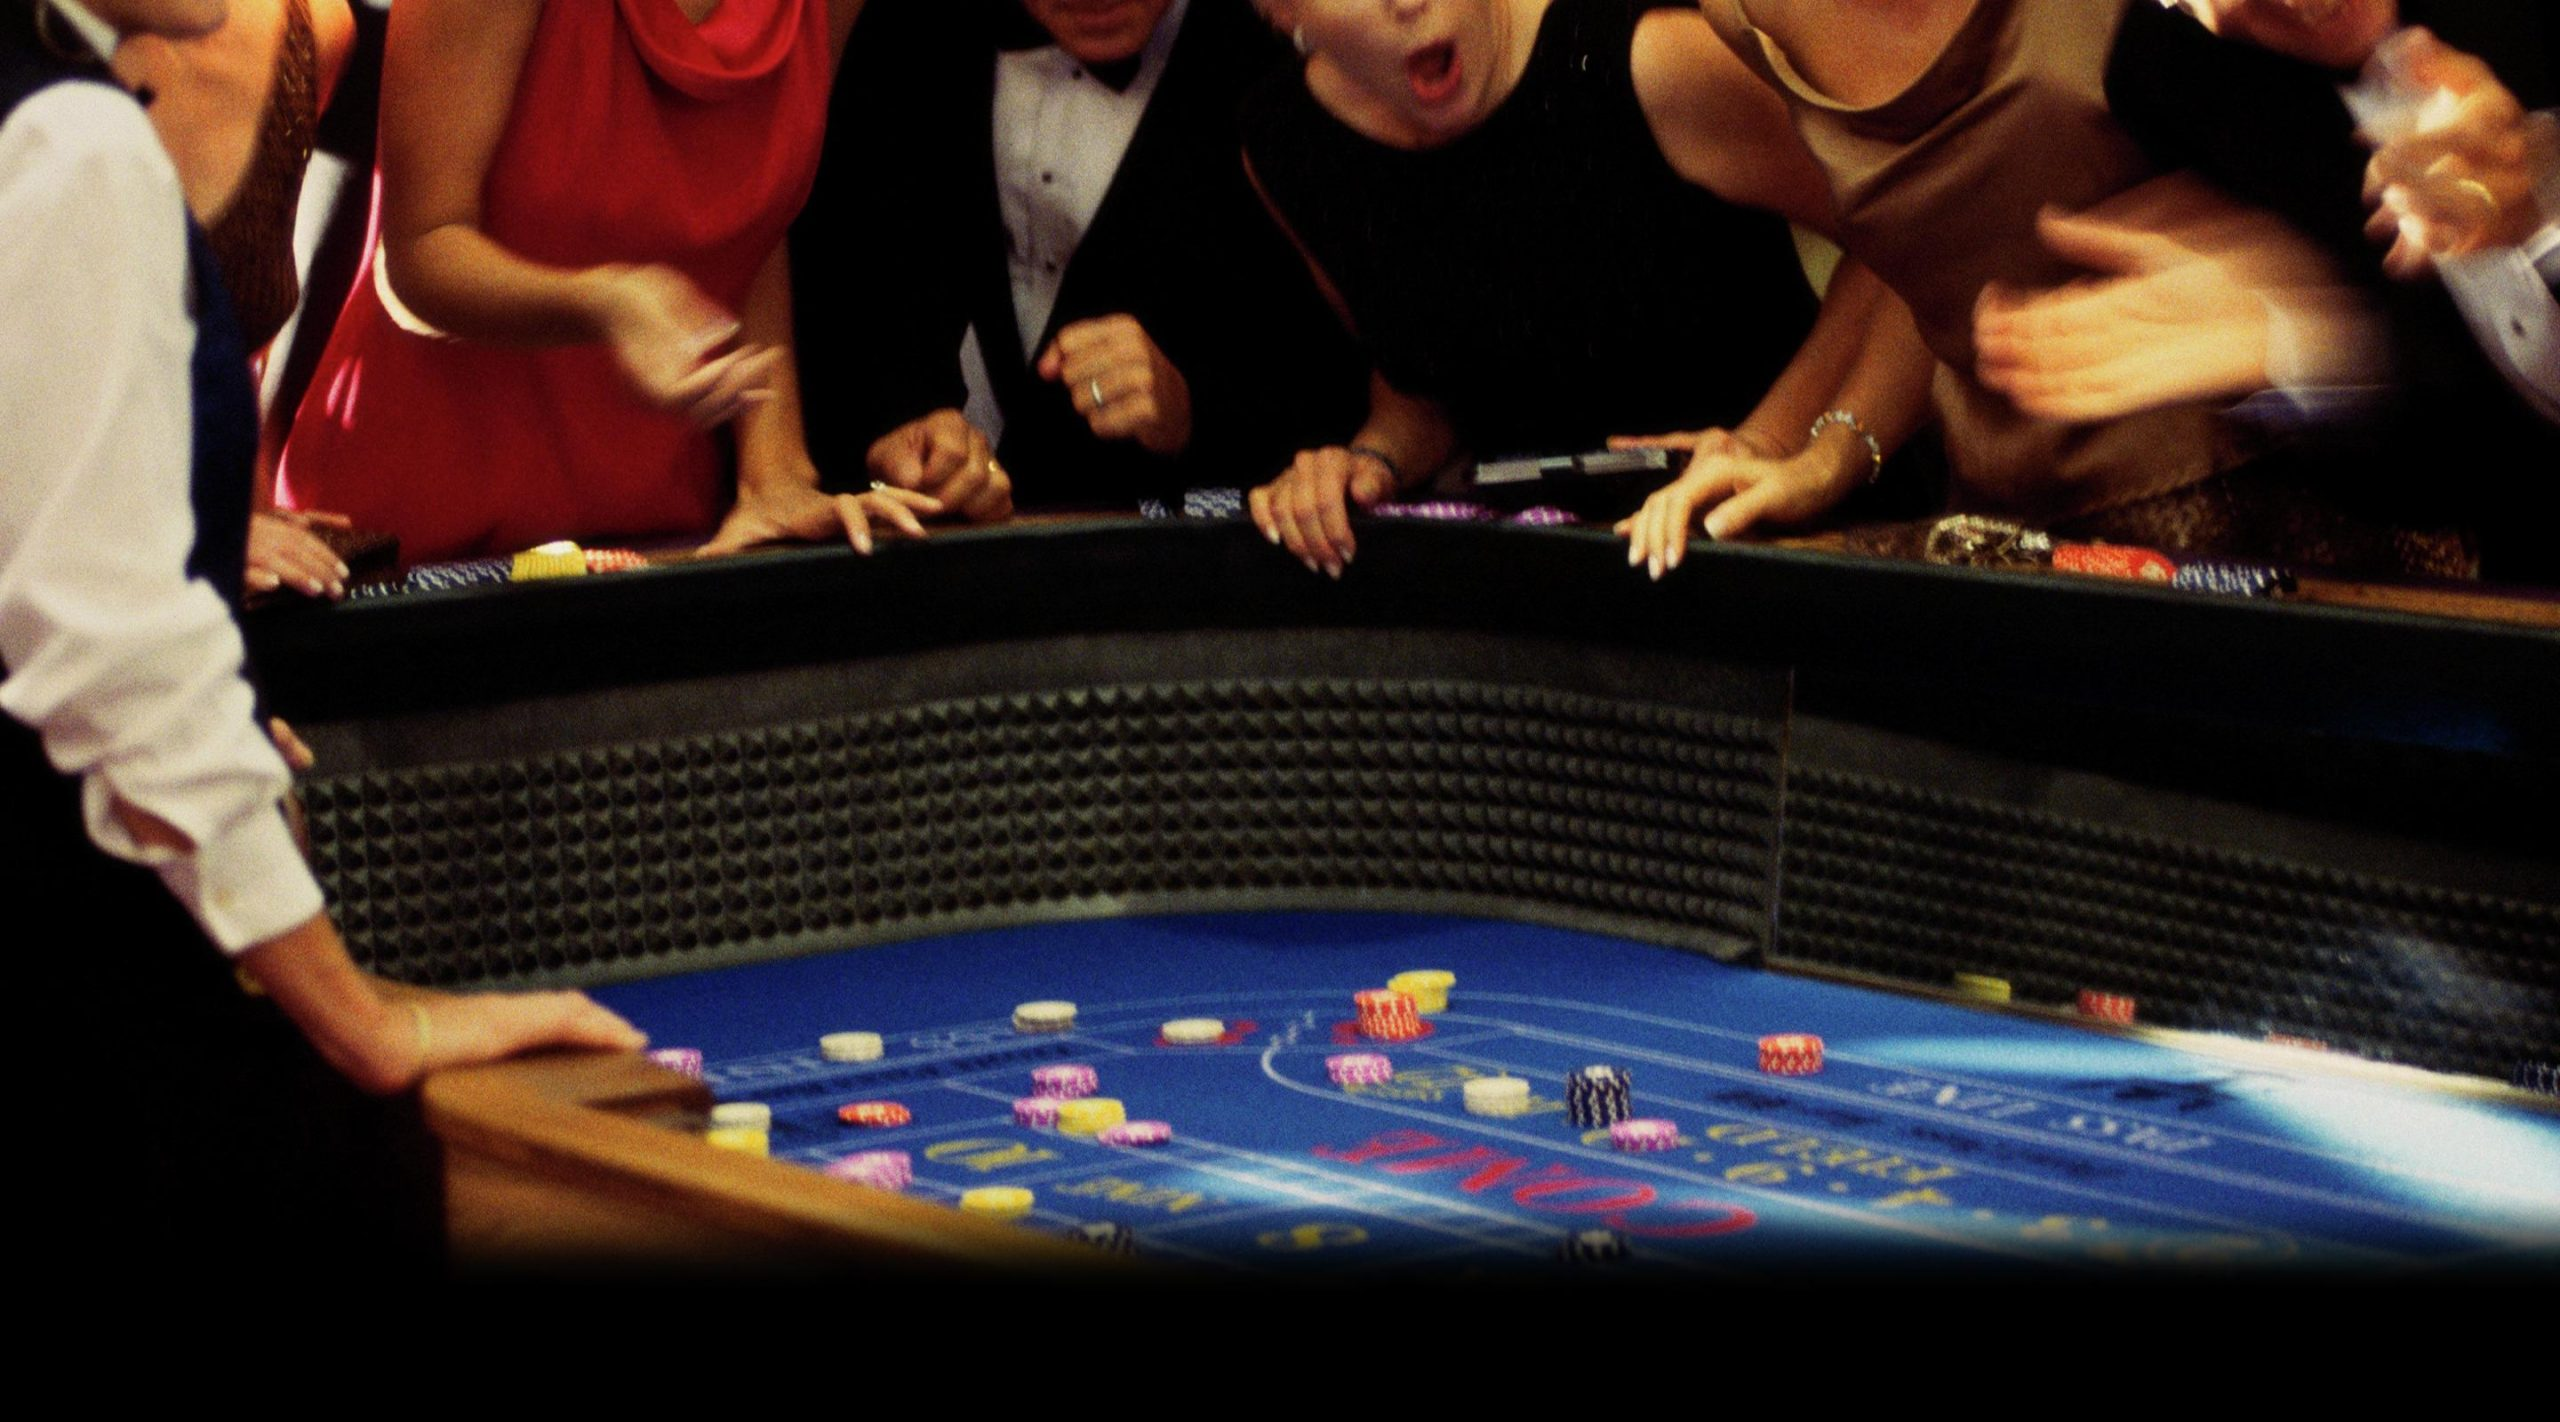 Table Games Group